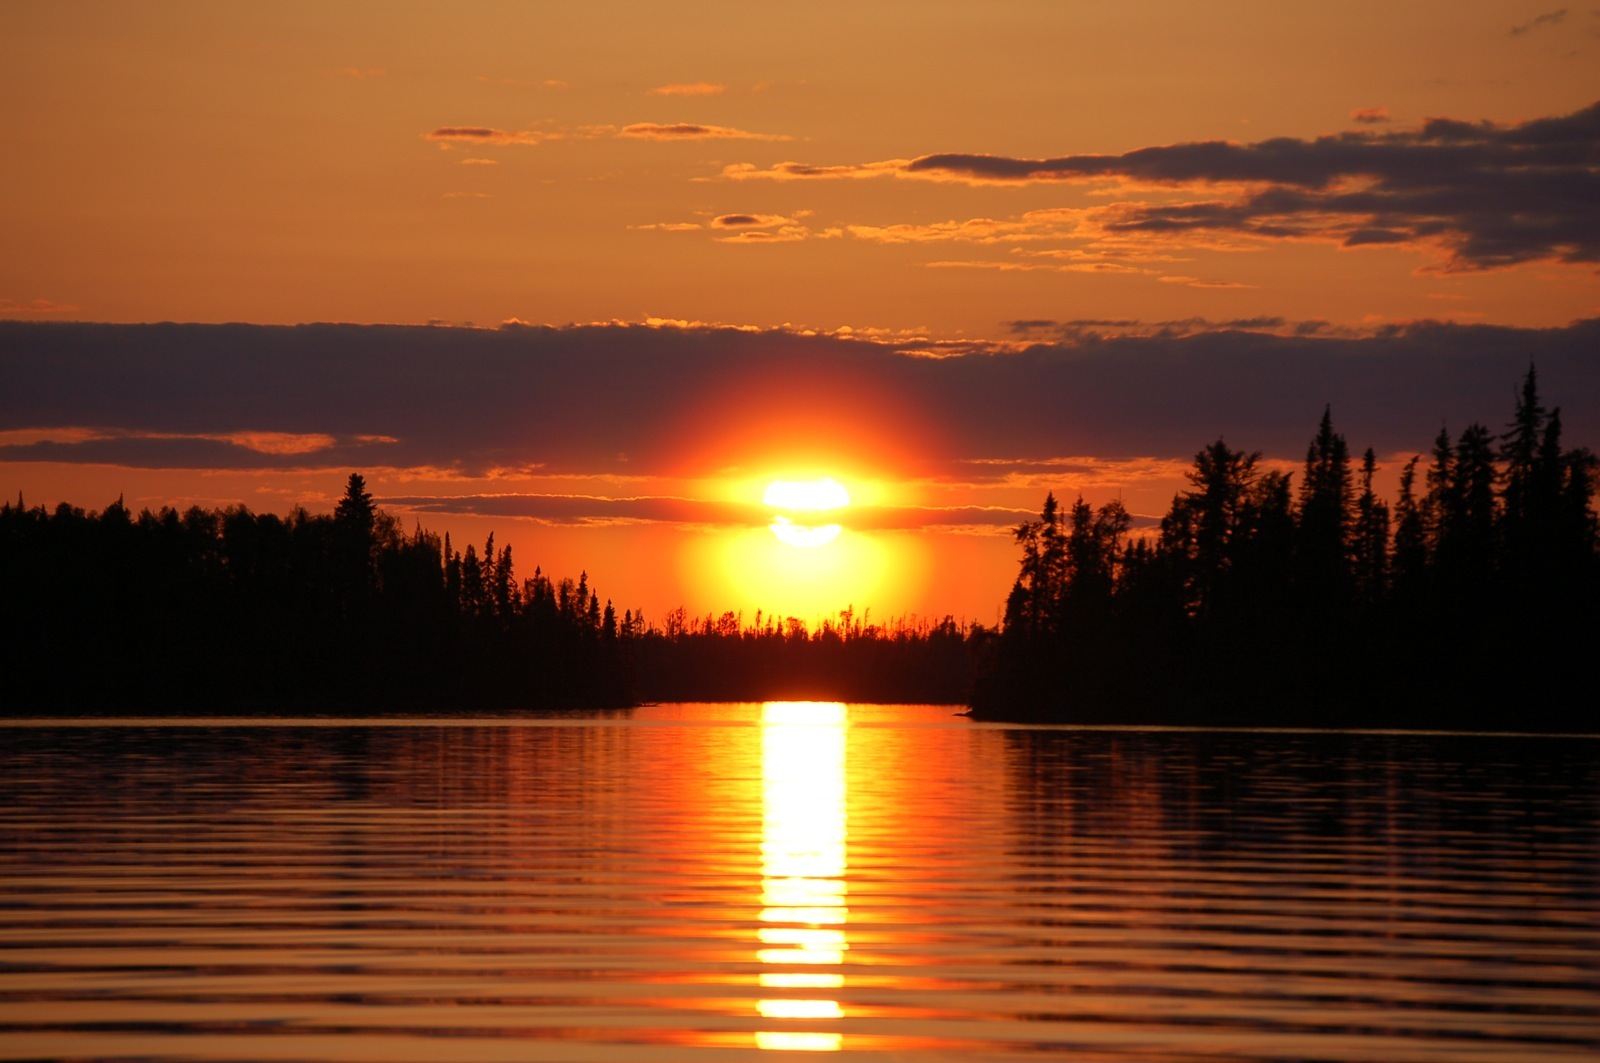 The vibrant orange sunset over Duncan Lake silhouettes pine trees across a glassy, reflective lake.